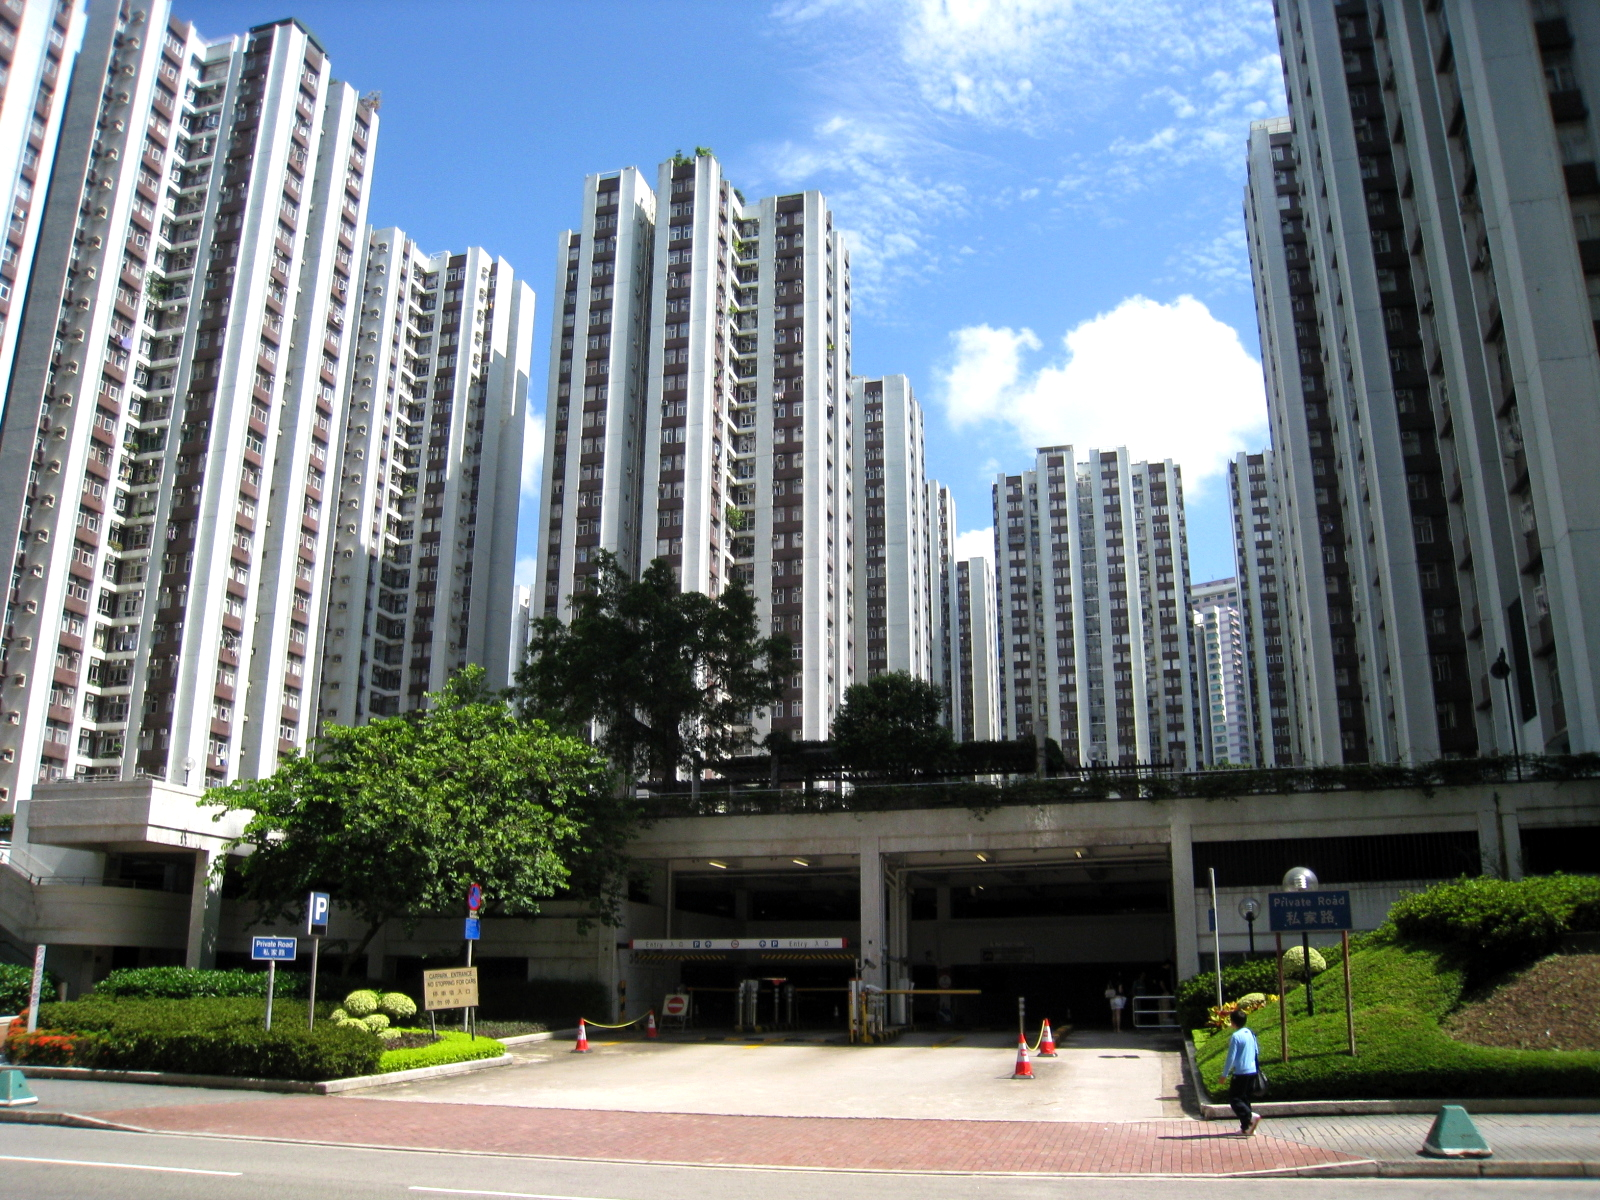 Google images for Royal terrace quarry bay